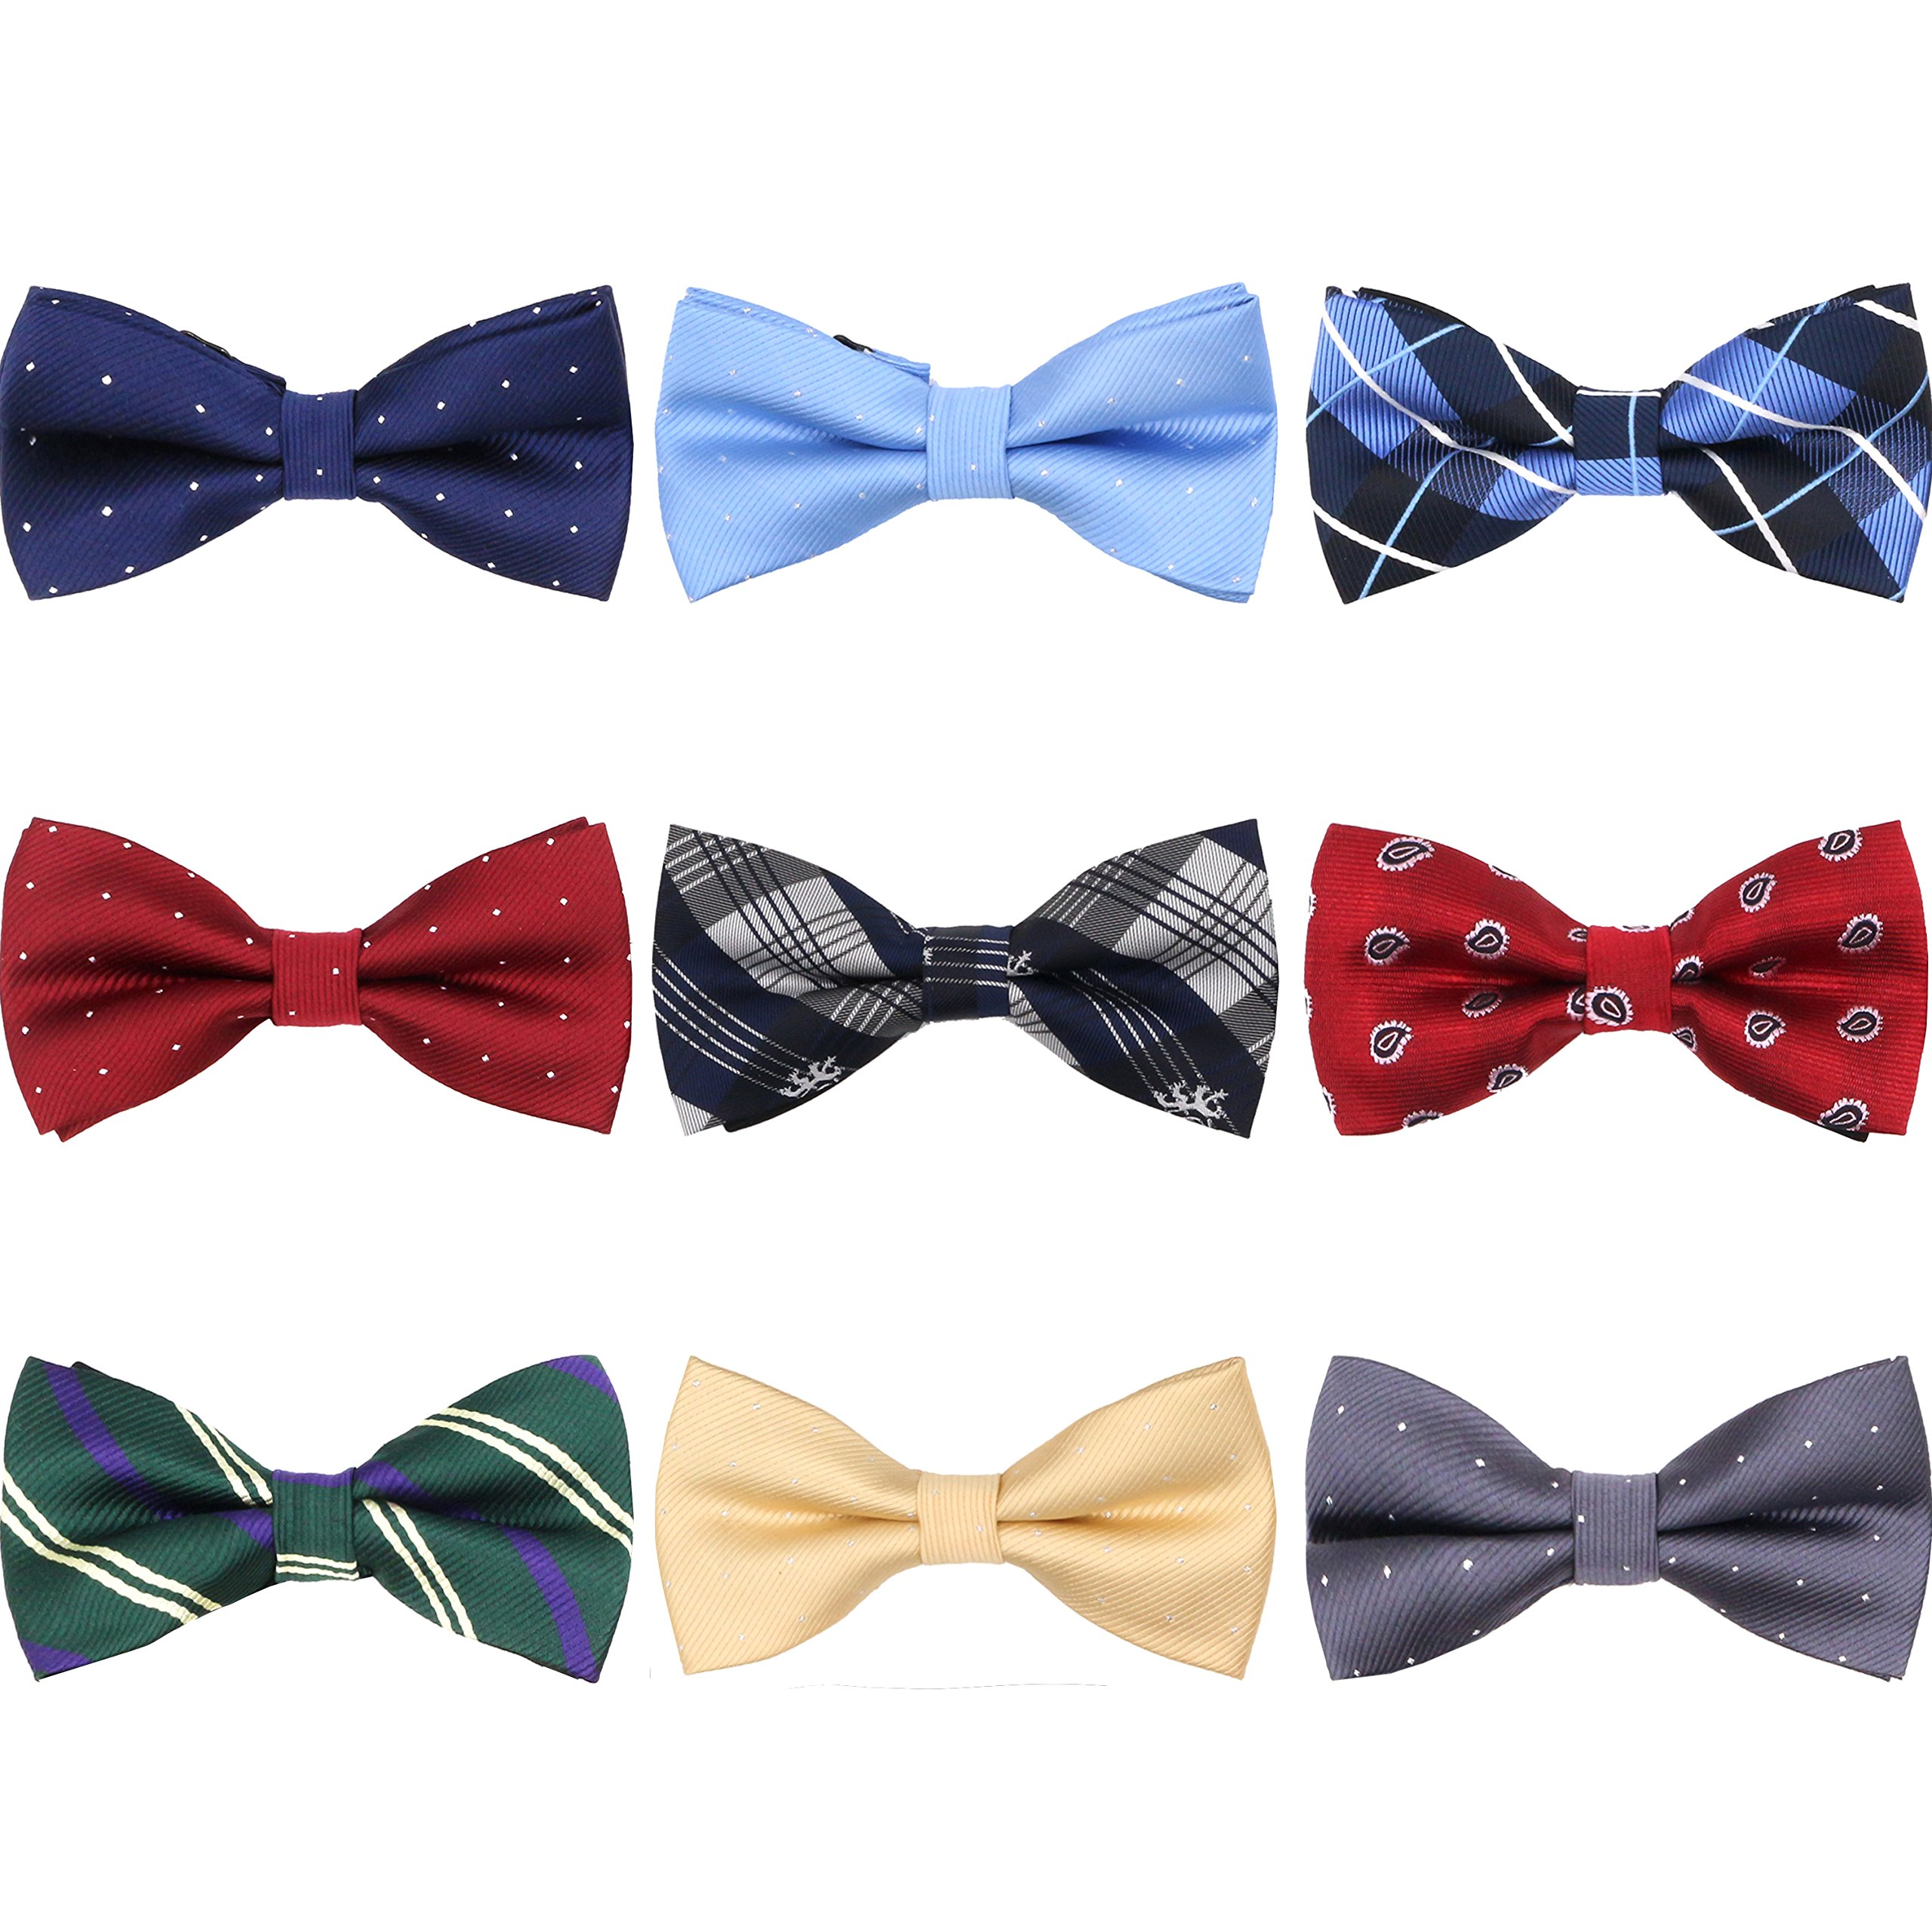 Fish-bone bow tie pattern ichthyology pre-tied shape by Bow Tie House Large,